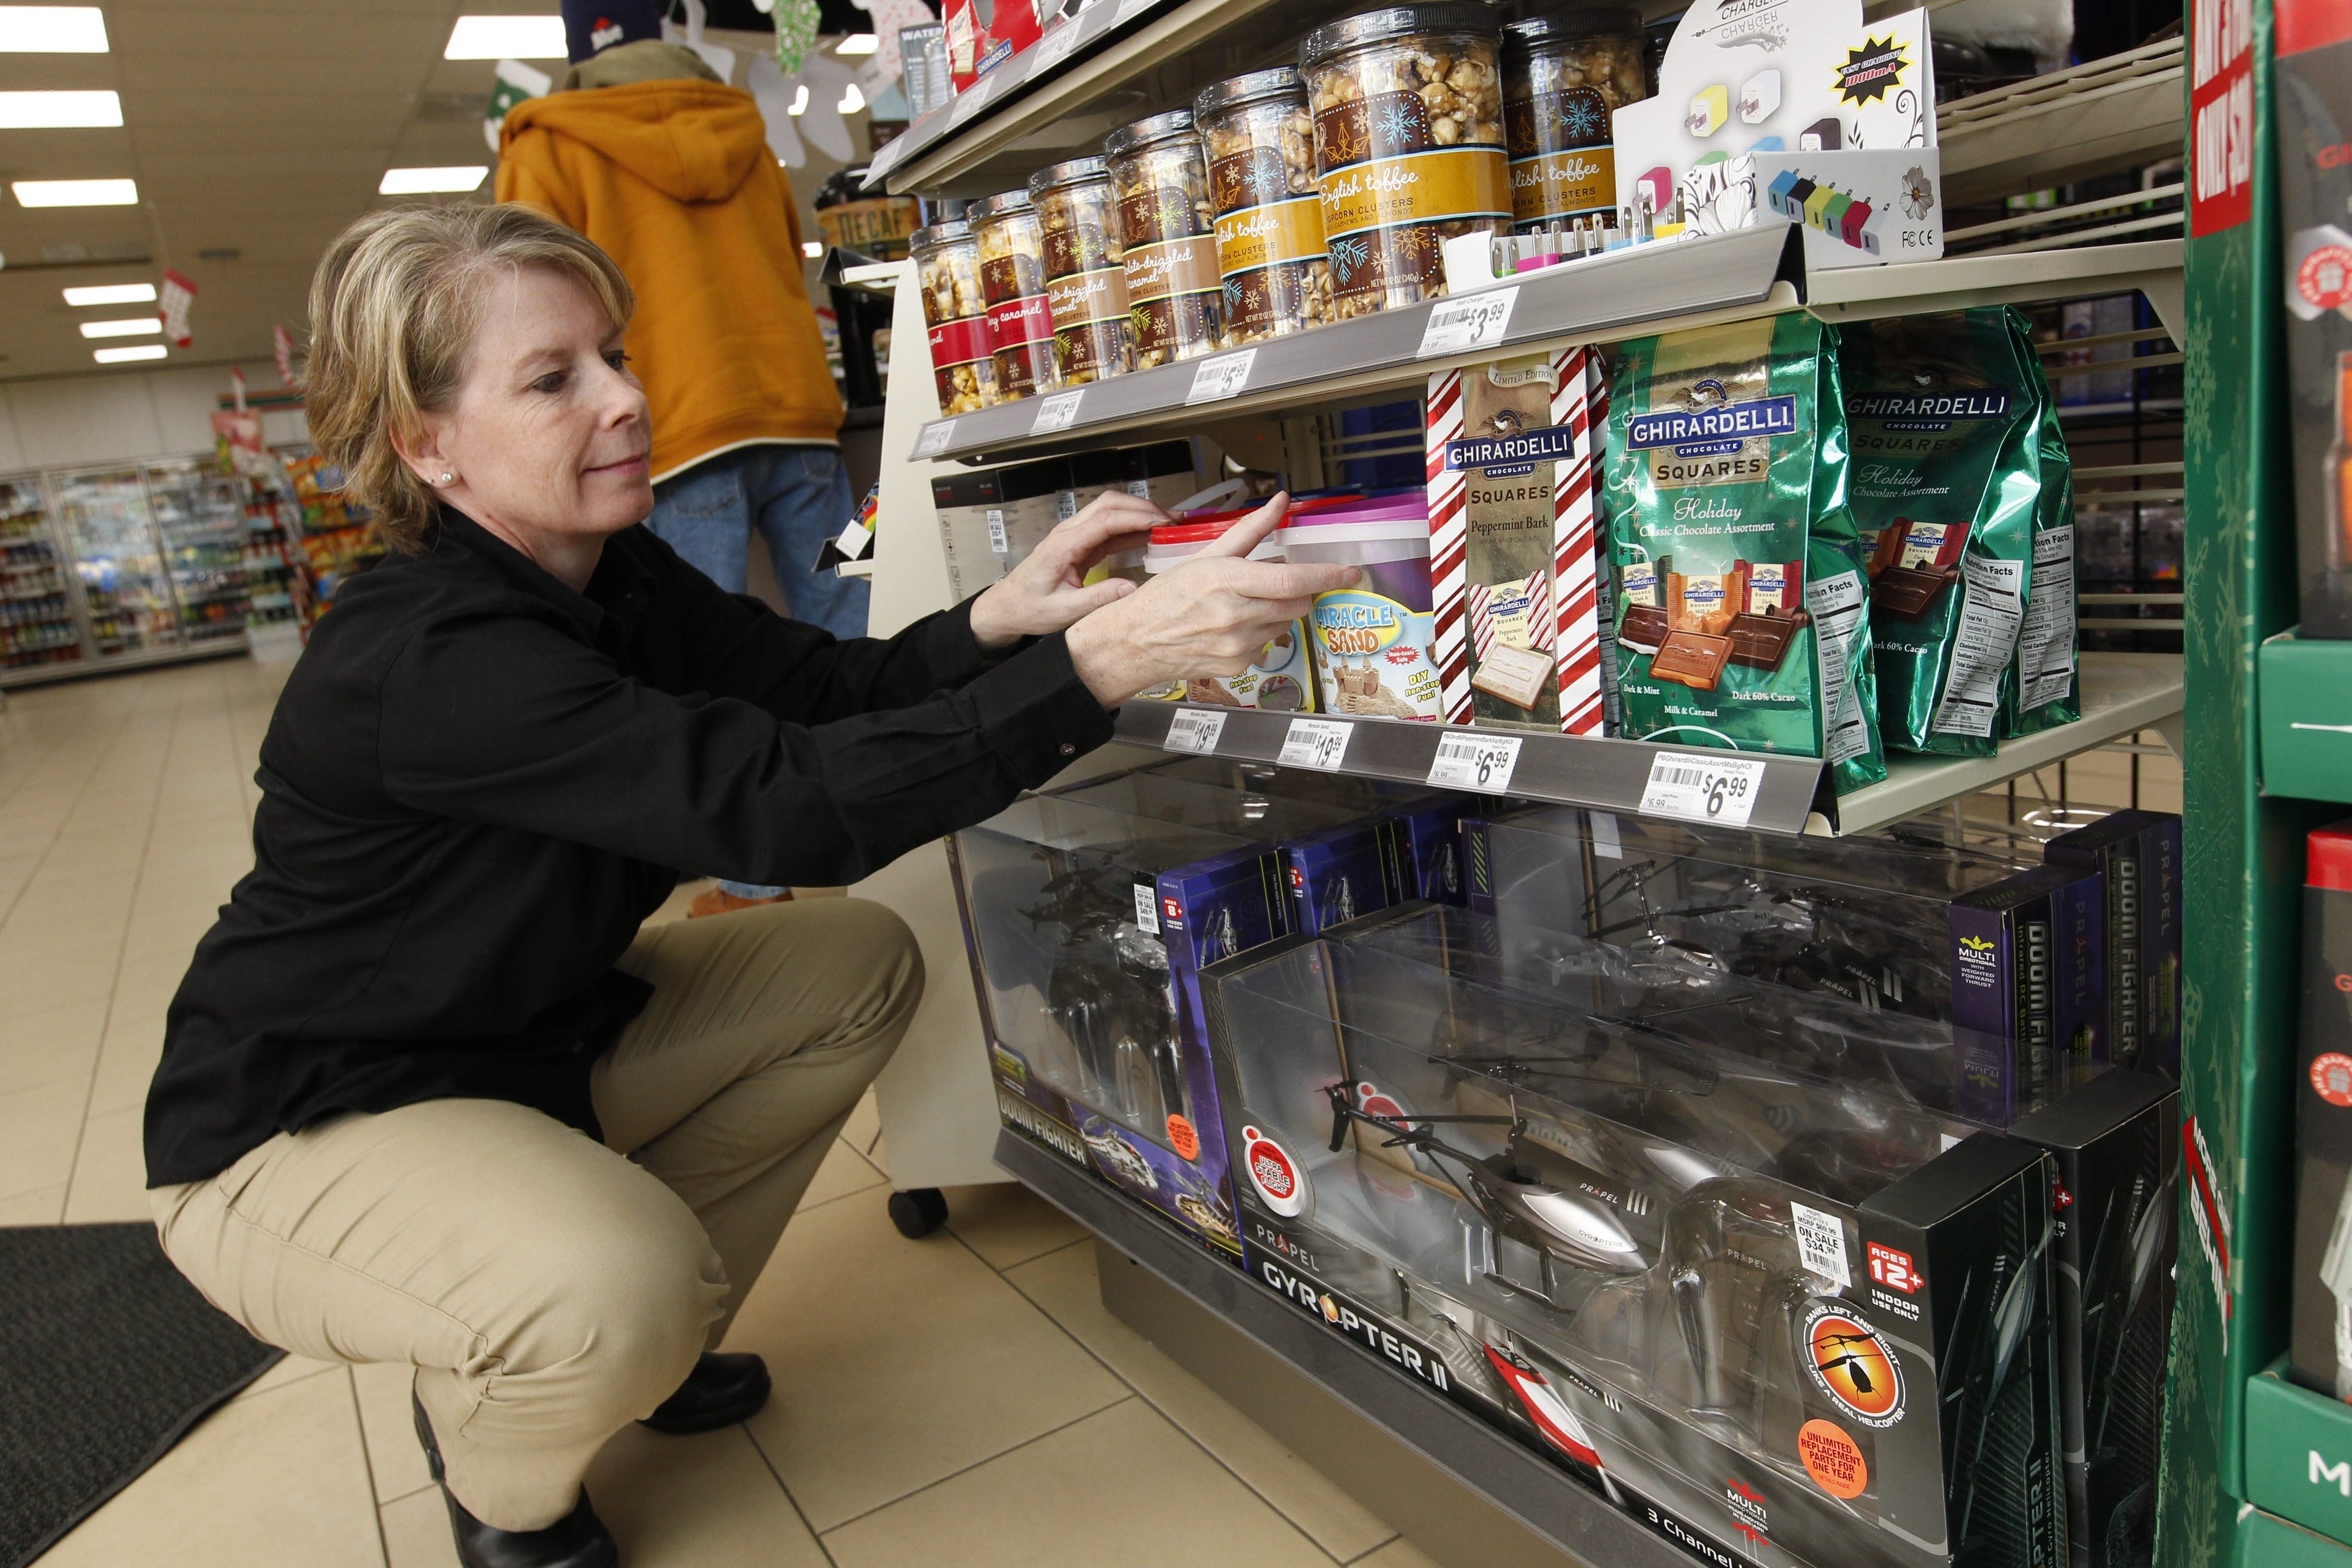 Manager Sherry Wightman arranges a shelf of gift items for the last-minute shopper at the 7-Eleven convenience store in Hamburg.